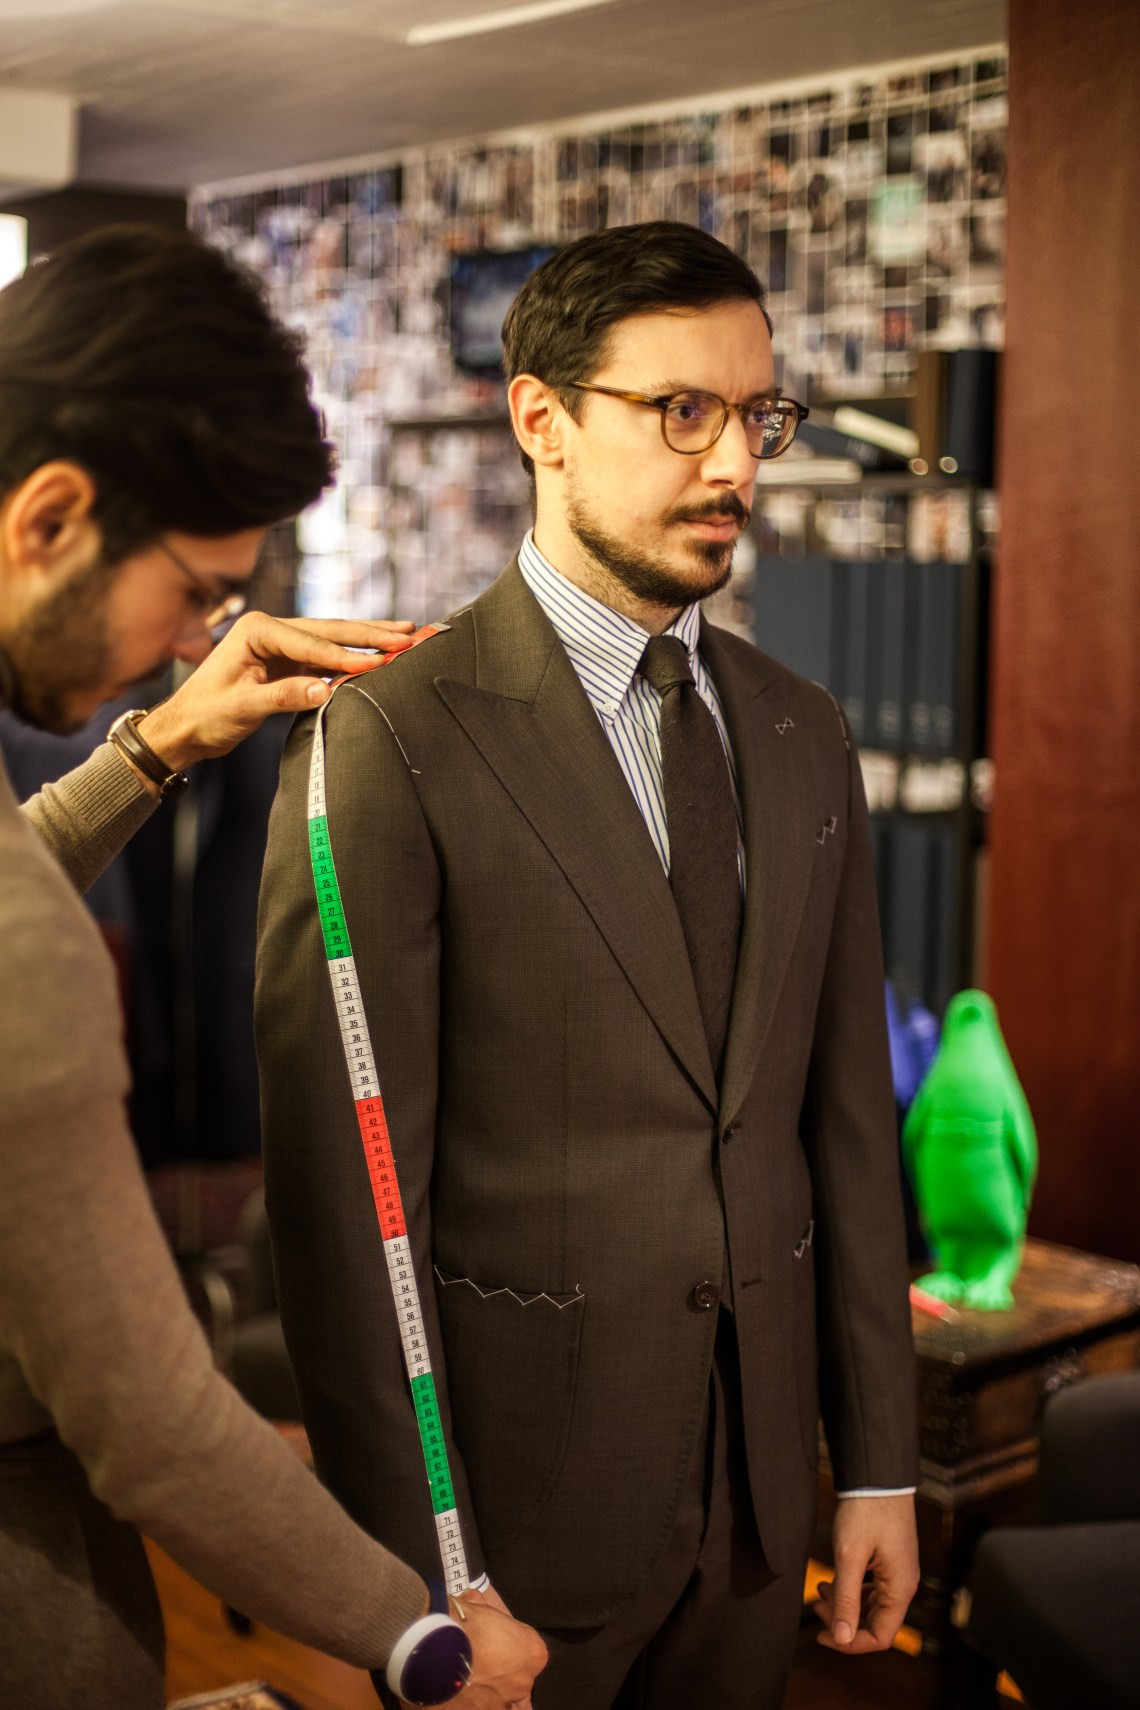 Difference between bespoke, made-to-measure and ready-to-wear